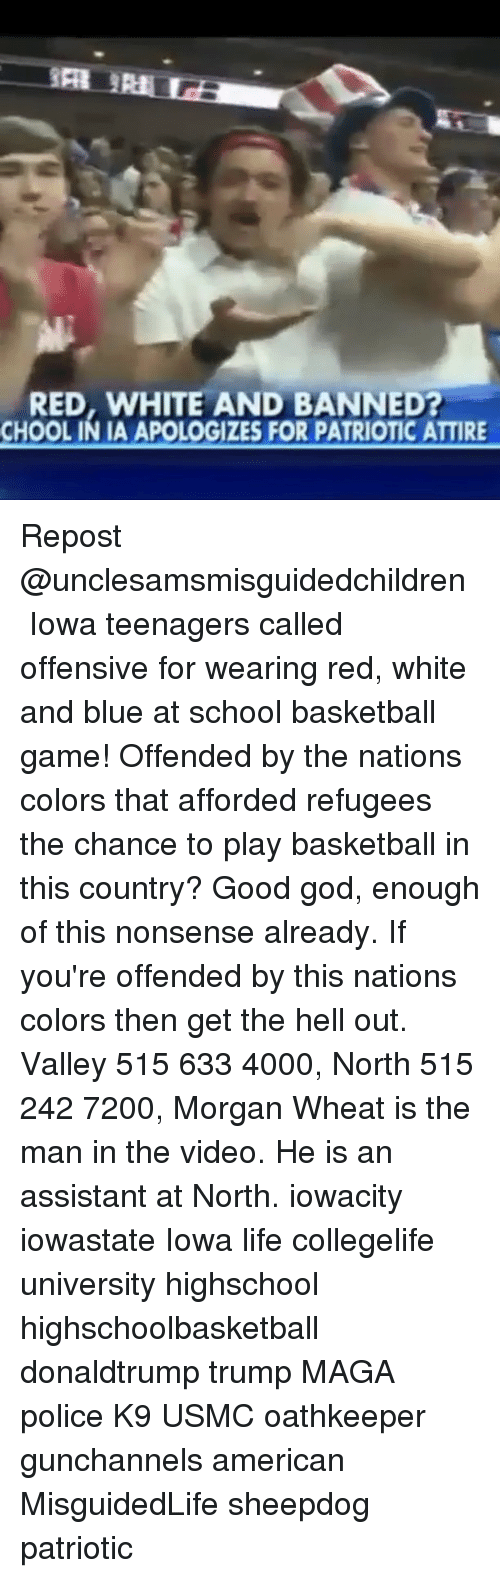 Memes, Iowa, and 🤖: RED, WHITE AND BANNED  CHOOLINIA APOLOGIZES FOR PATRIOTIC ATTIRE Repost @unclesamsmisguidedchildren ・・・ Iowa teenagers called offensive for wearing red, white and blue at school basketball game! Offended by the nations colors that afforded refugees the chance to play basketball in this country? Good god, enough of this nonsense already. If you're offended by this nations colors then get the hell out. Valley 515 633 4000, North 515 242 7200, Morgan Wheat is the man in the video. He is an assistant at North. iowacity iowastate Iowa life collegelife university highschool highschoolbasketball donaldtrump trump MAGA police K9 USMC oathkeeper gunchannels american MisguidedLife sheepdog patriotic